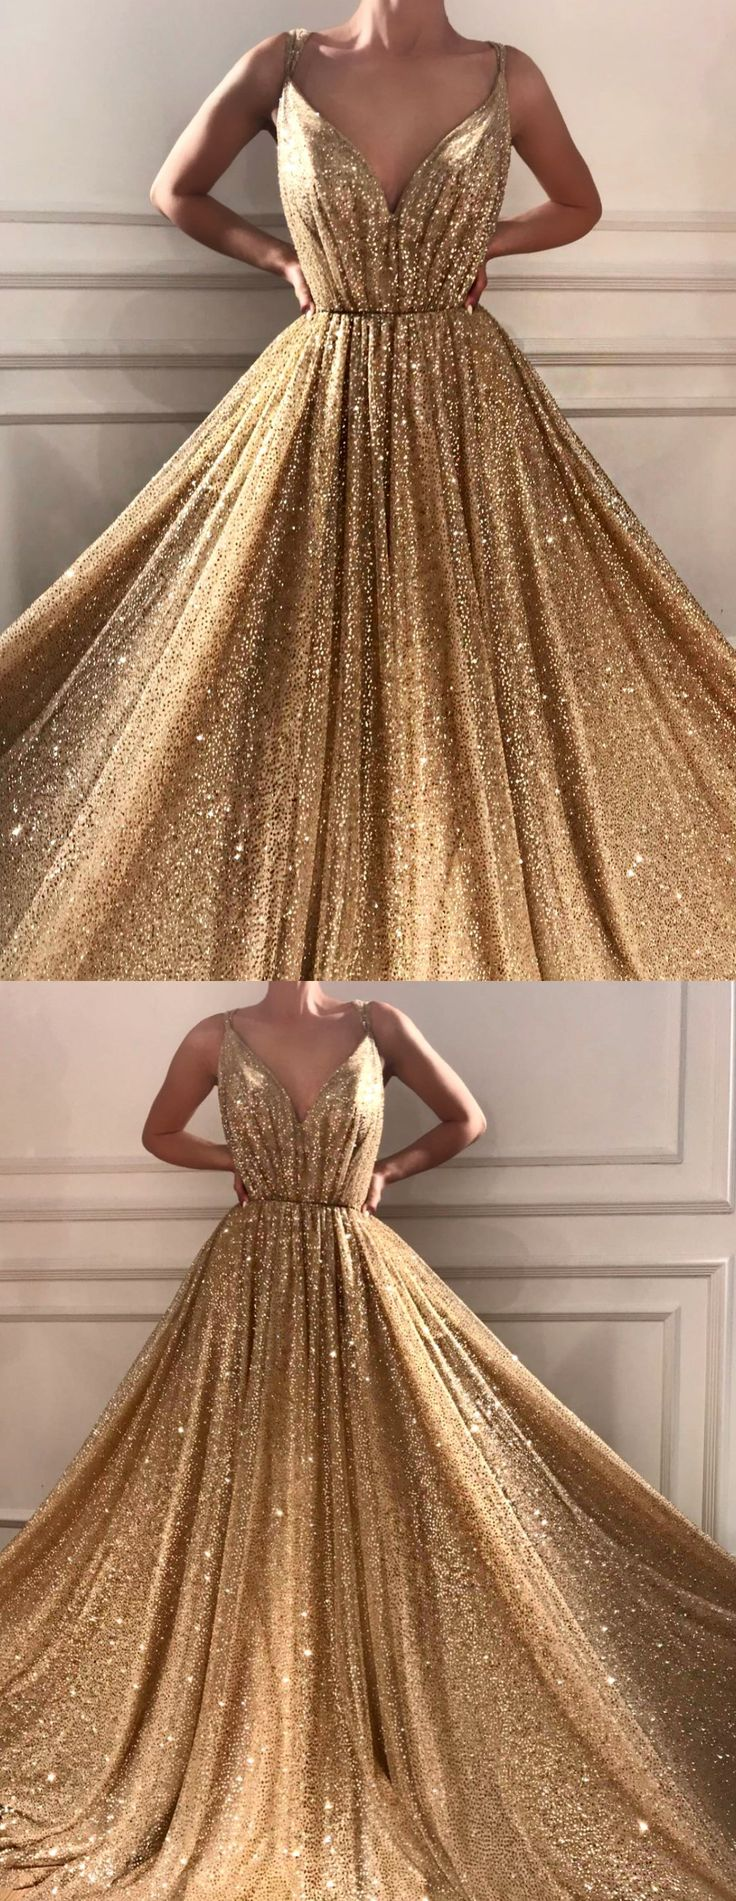 Sparkly Prom Dresses Spaghetti Straps A-line Gold Bling Long Sexy Prom Dress JKL1189